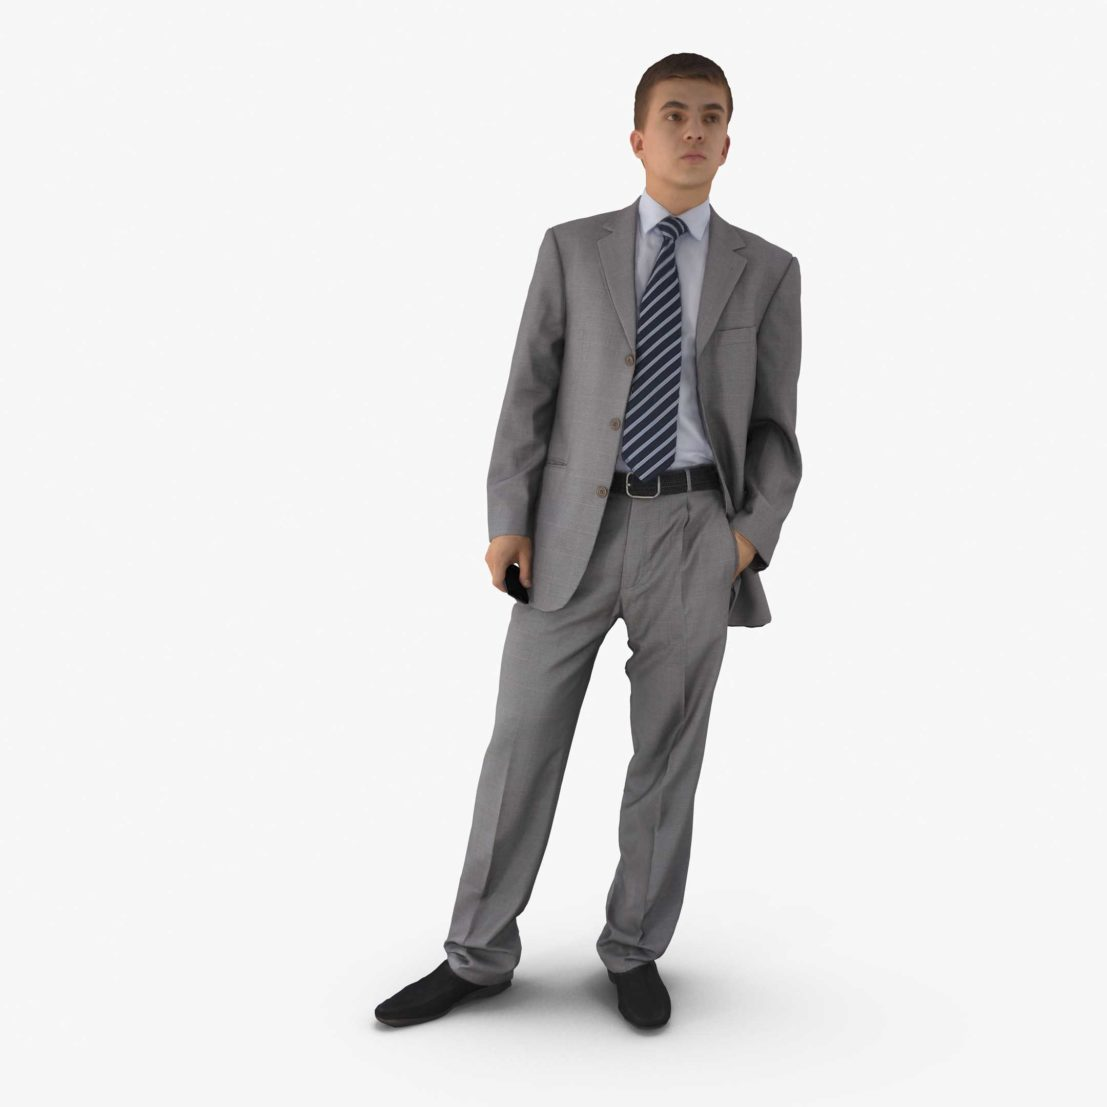 Businessman Watching 3D Model | 3DTree Scanning Studio